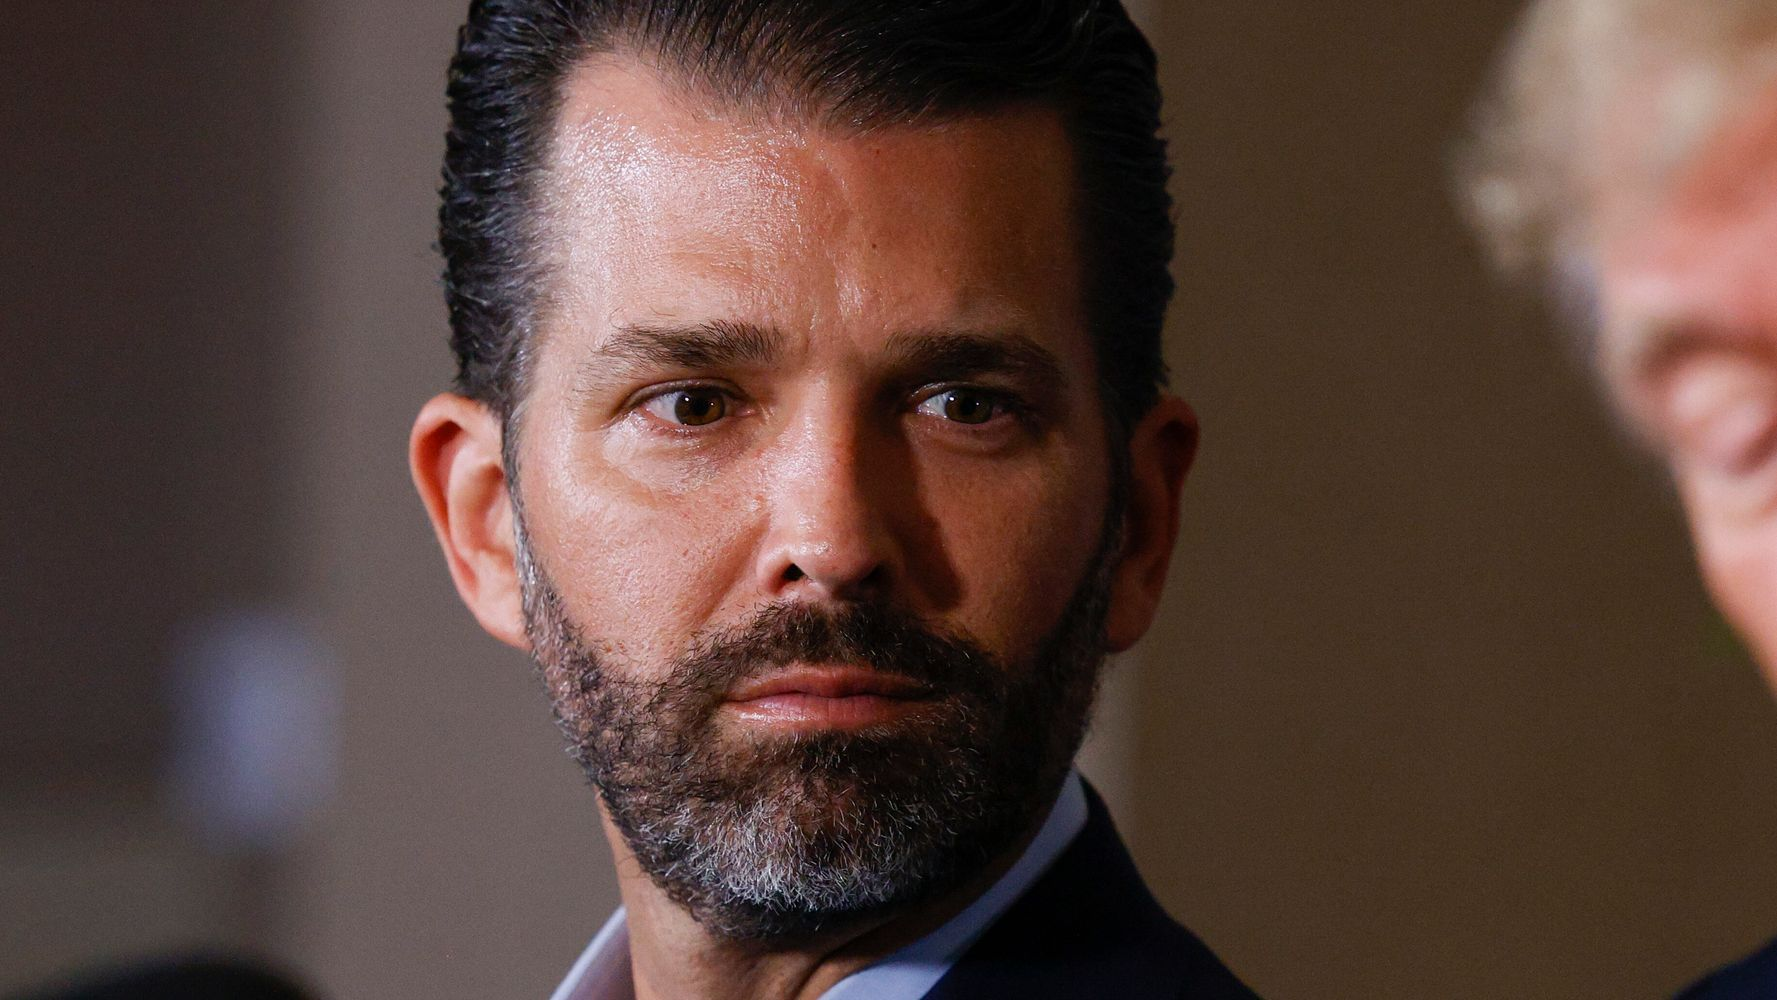 Donald Trump Jr.'s 'Sick' Stunt Earns Him Scathing New Nickname From New York Daily News